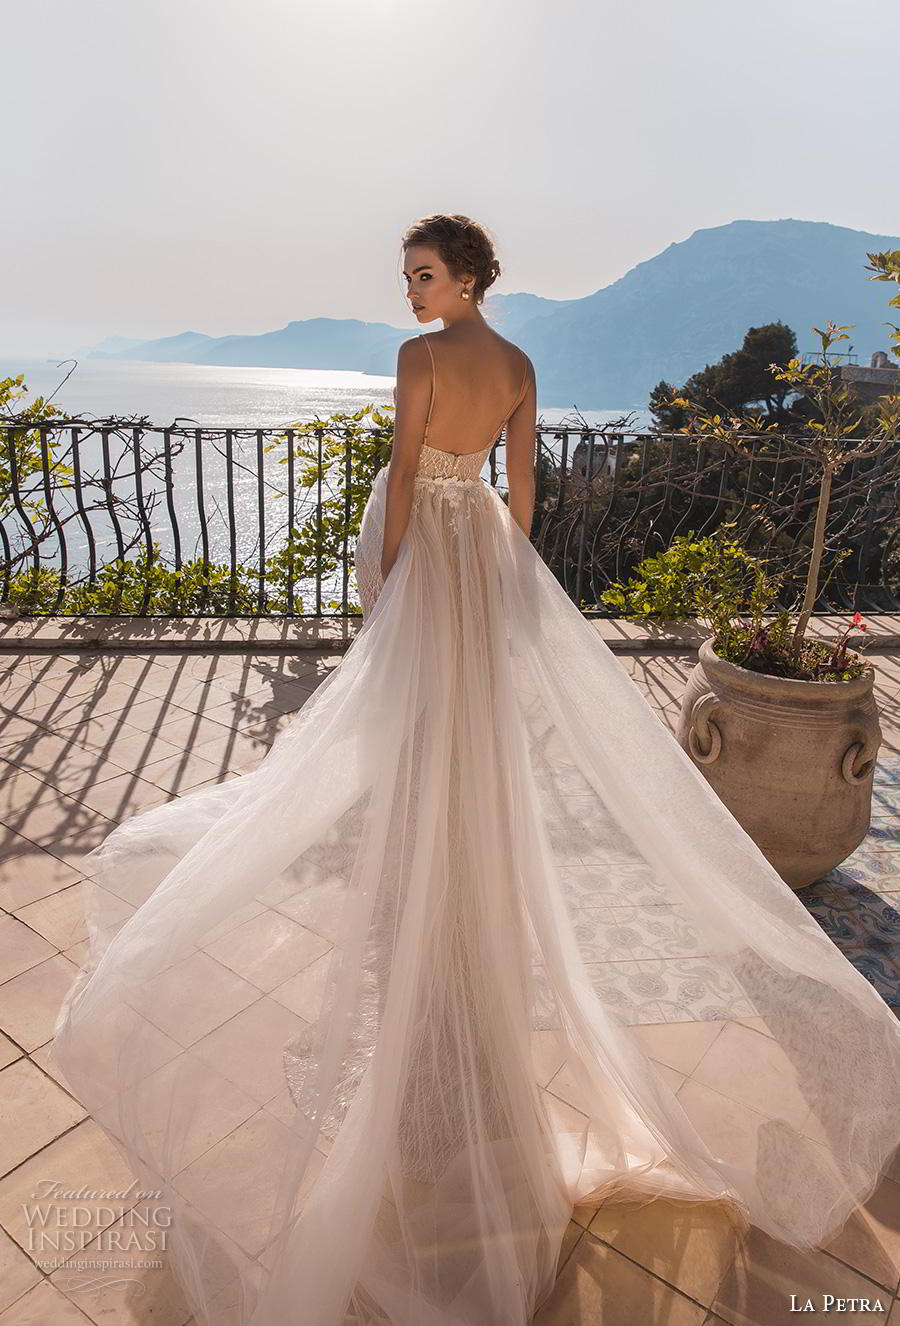 la petra 2019 bridal spaghetti strap dee plunging sweetheart neckline full embellishment elegant glamorous sheath wedding dress open back chapel train (14) bv